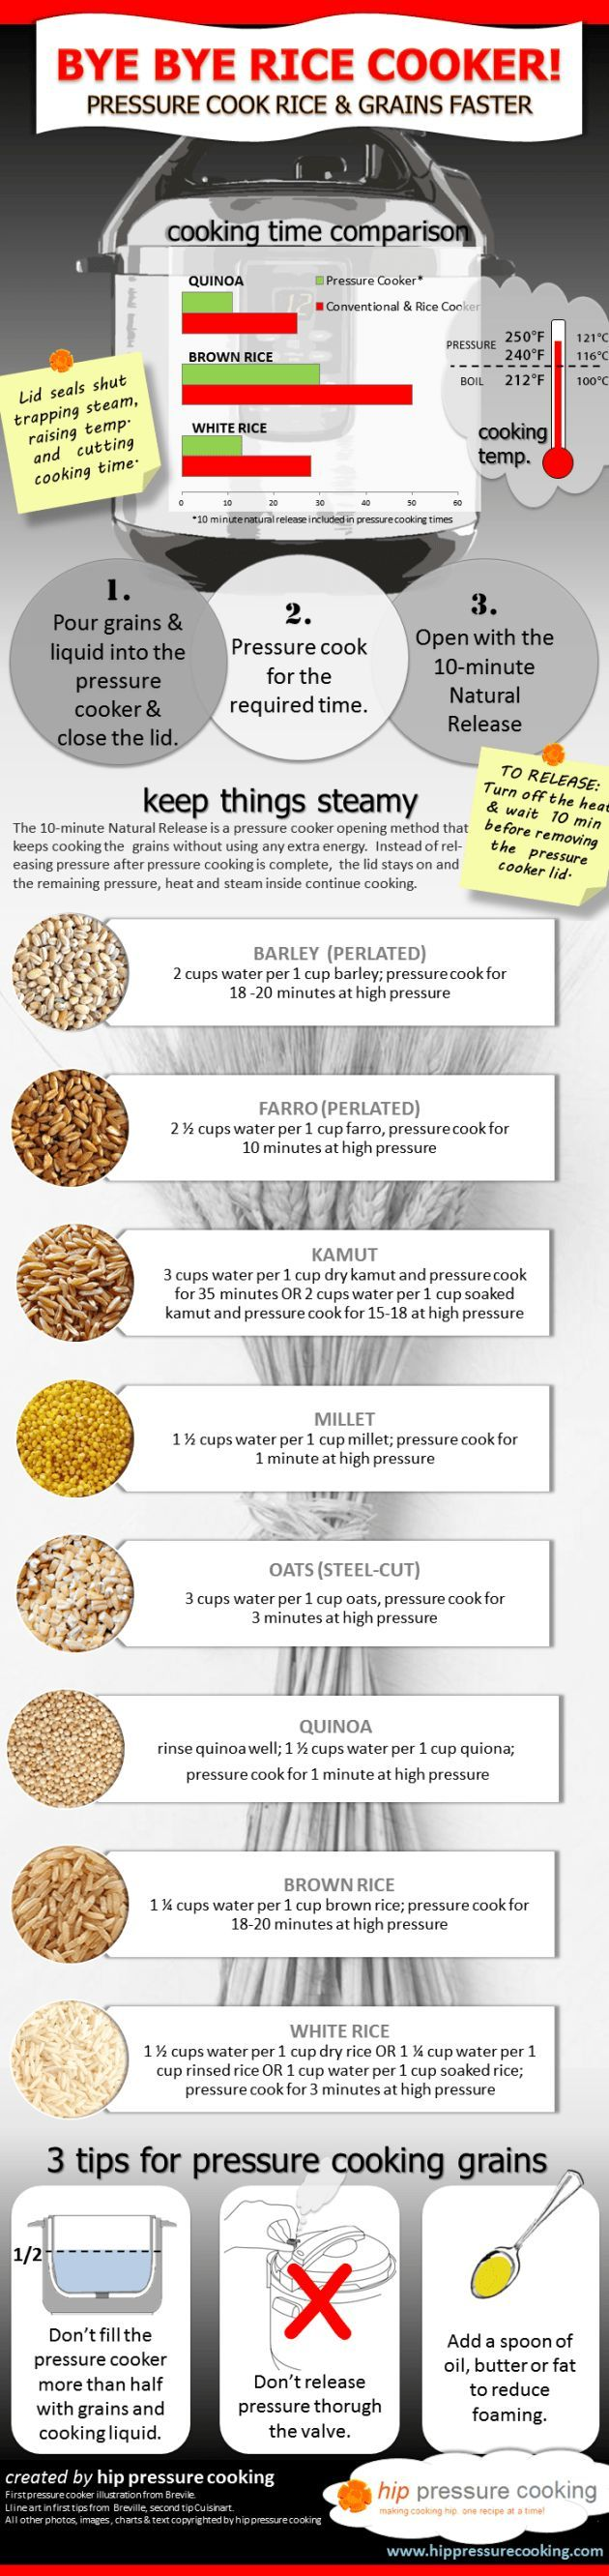 Infographic: Bye Bye Rice Cooker, pressure cook rice grains faster with…